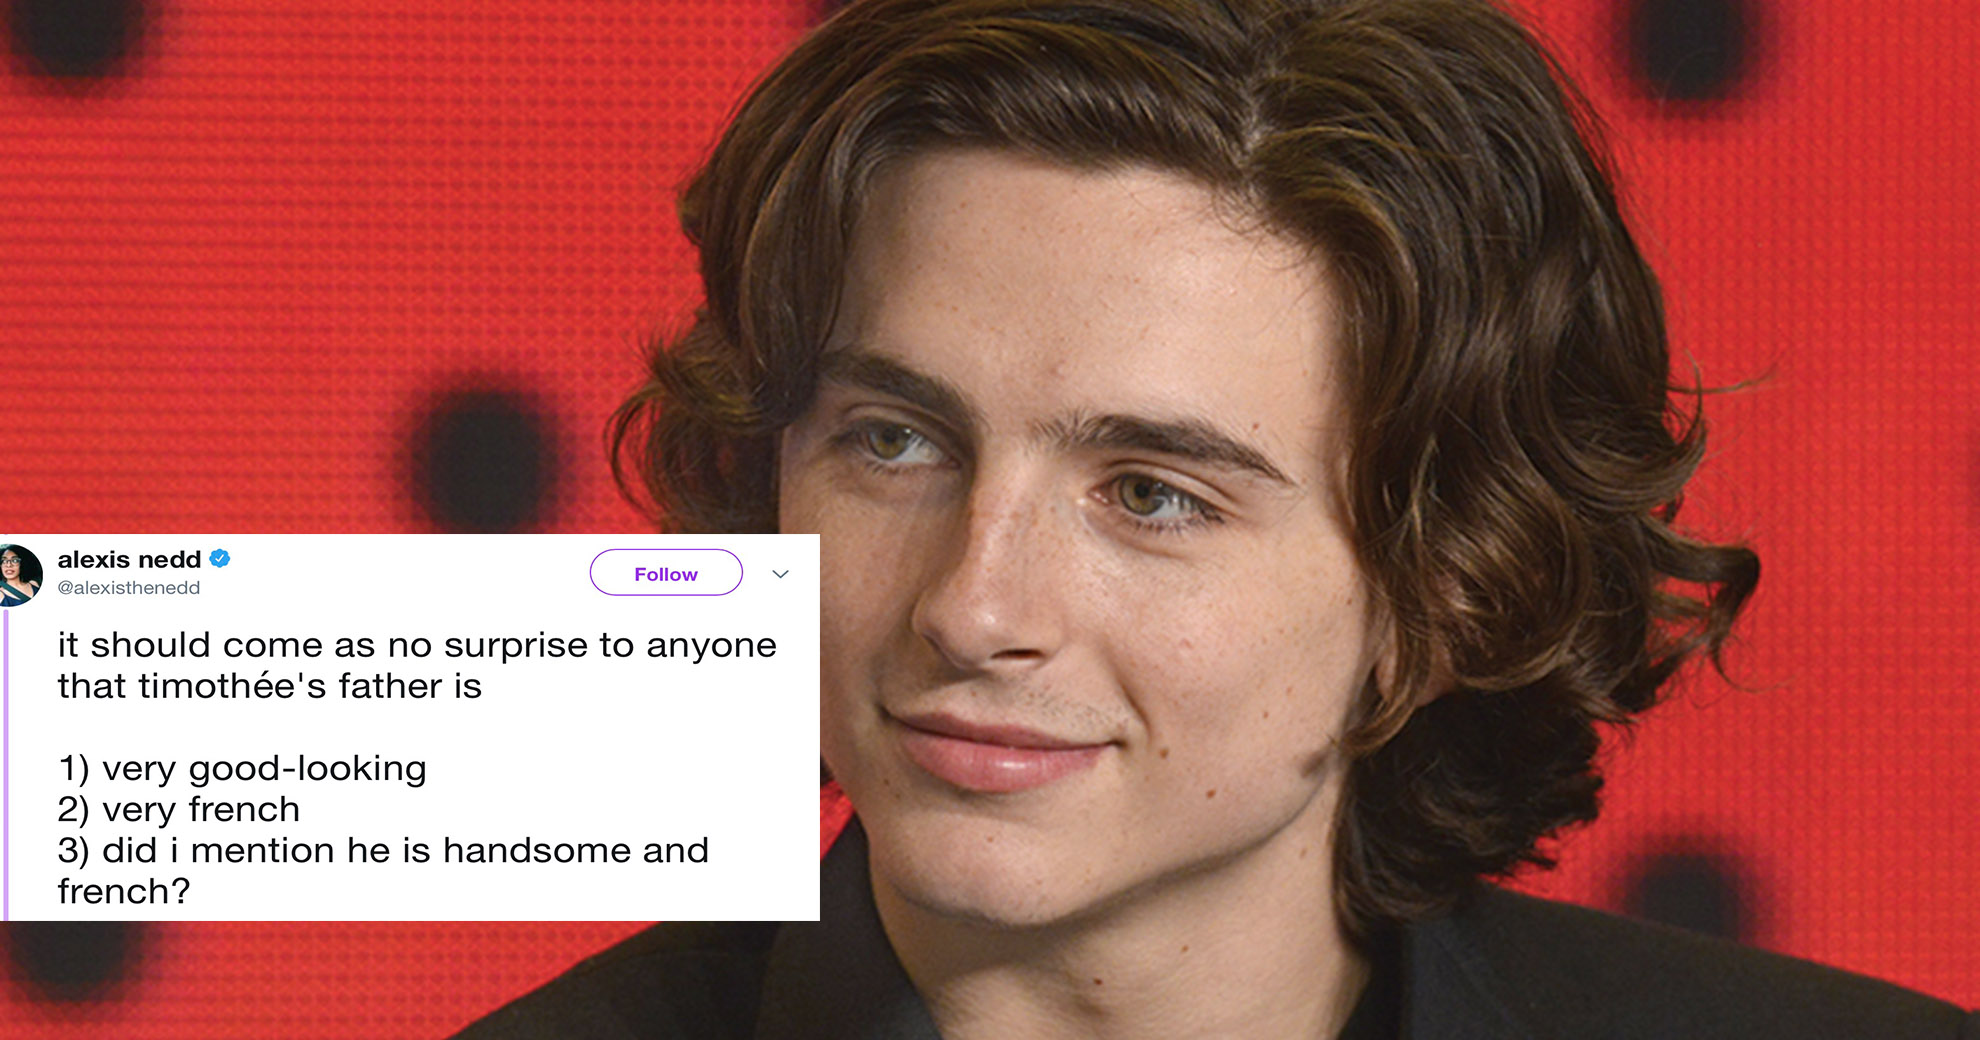 Woman Admits Awkward Encounter With Timothee Chalamet's Dad In Twitter Rant